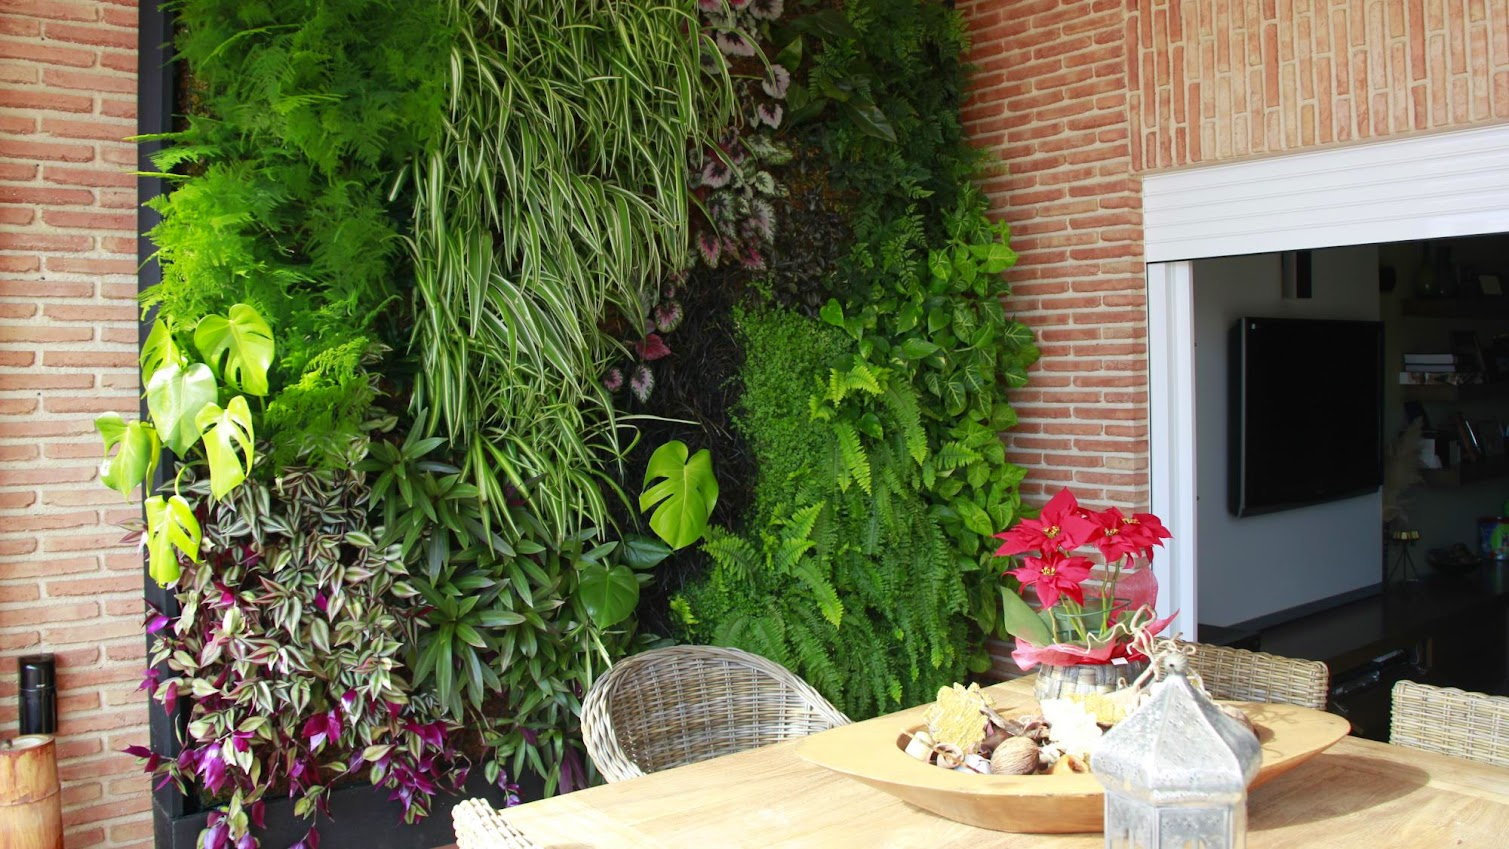 Los beneficios de un jard n vertical interior for Jardines interiores